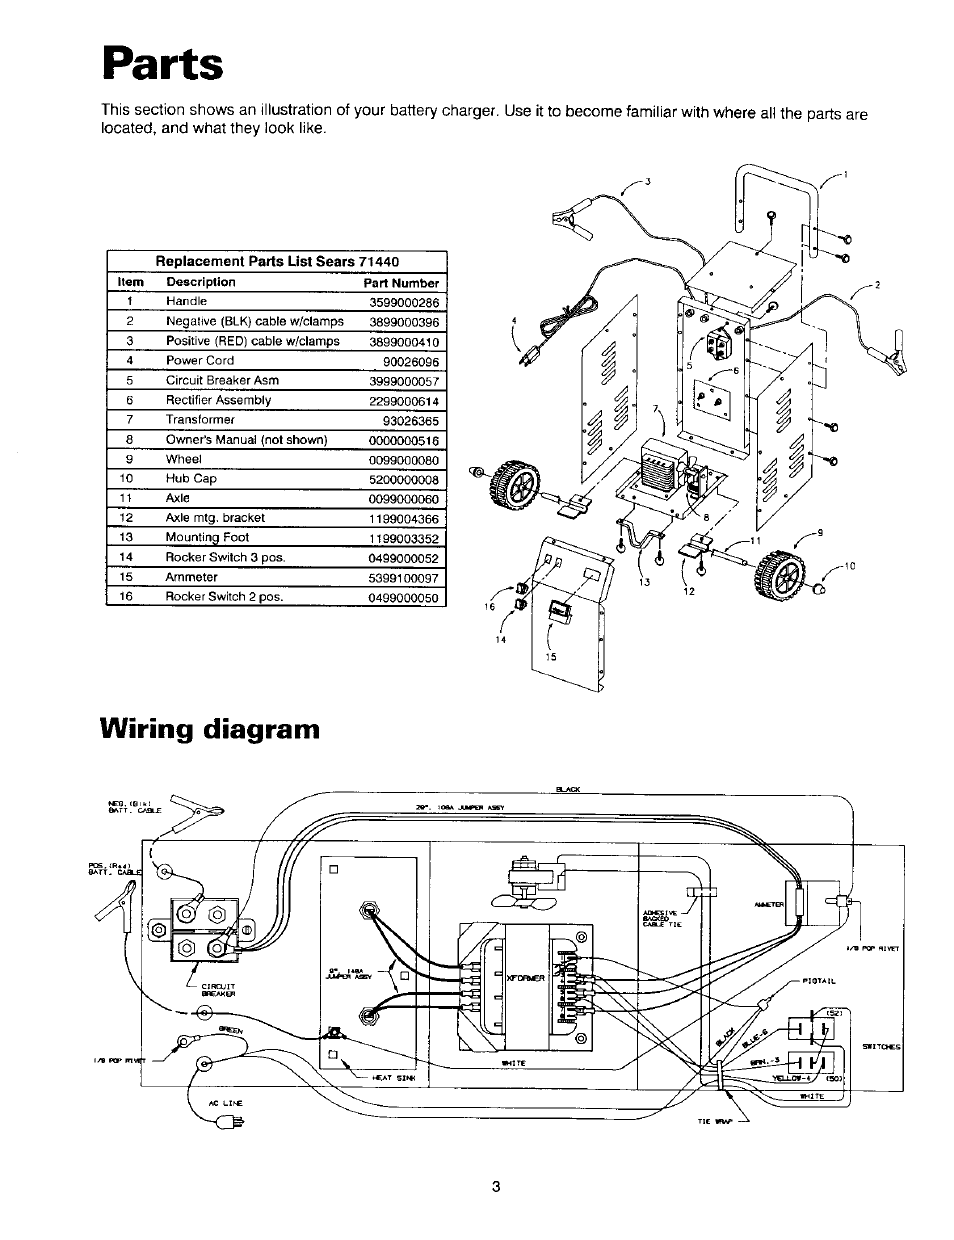 [DIAGRAM] Peugeot 406 User Wiring Diagram FULL Version HD